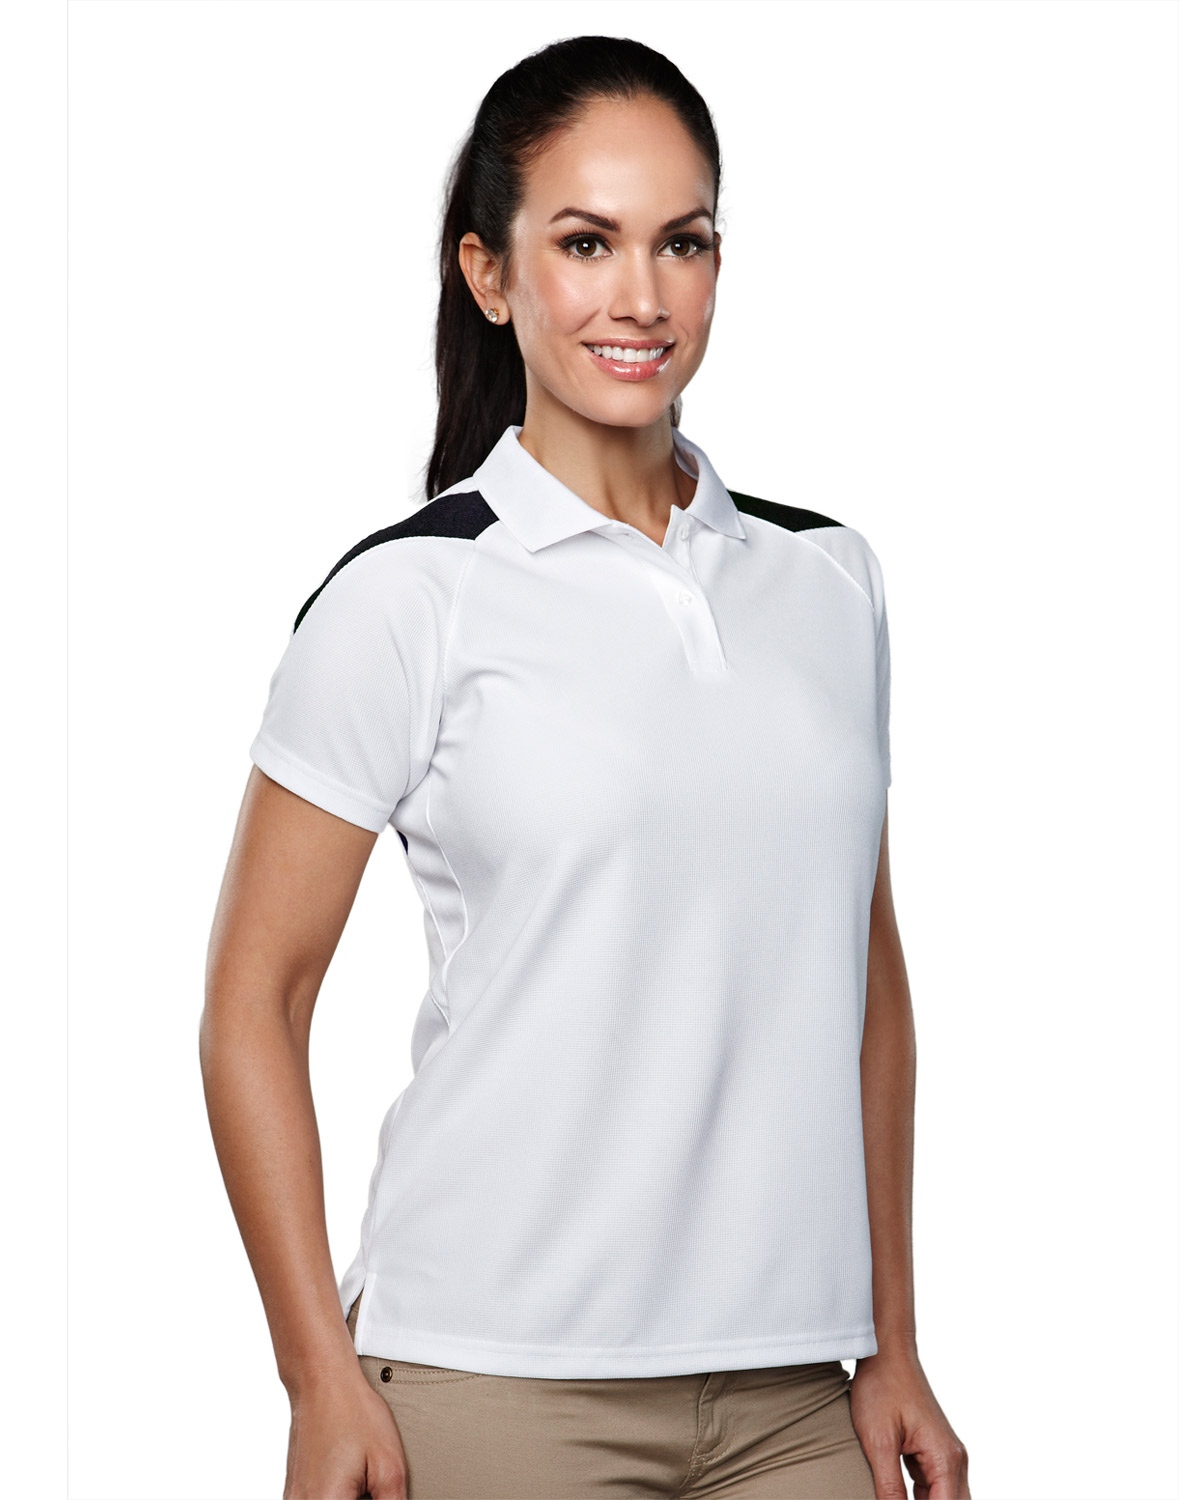 TRI-MOUNTAIN PERFORMANCE 203 Women Avenger Knit Polo Shirt Raglan Sleeve Shoulder Contrast at GotApparel